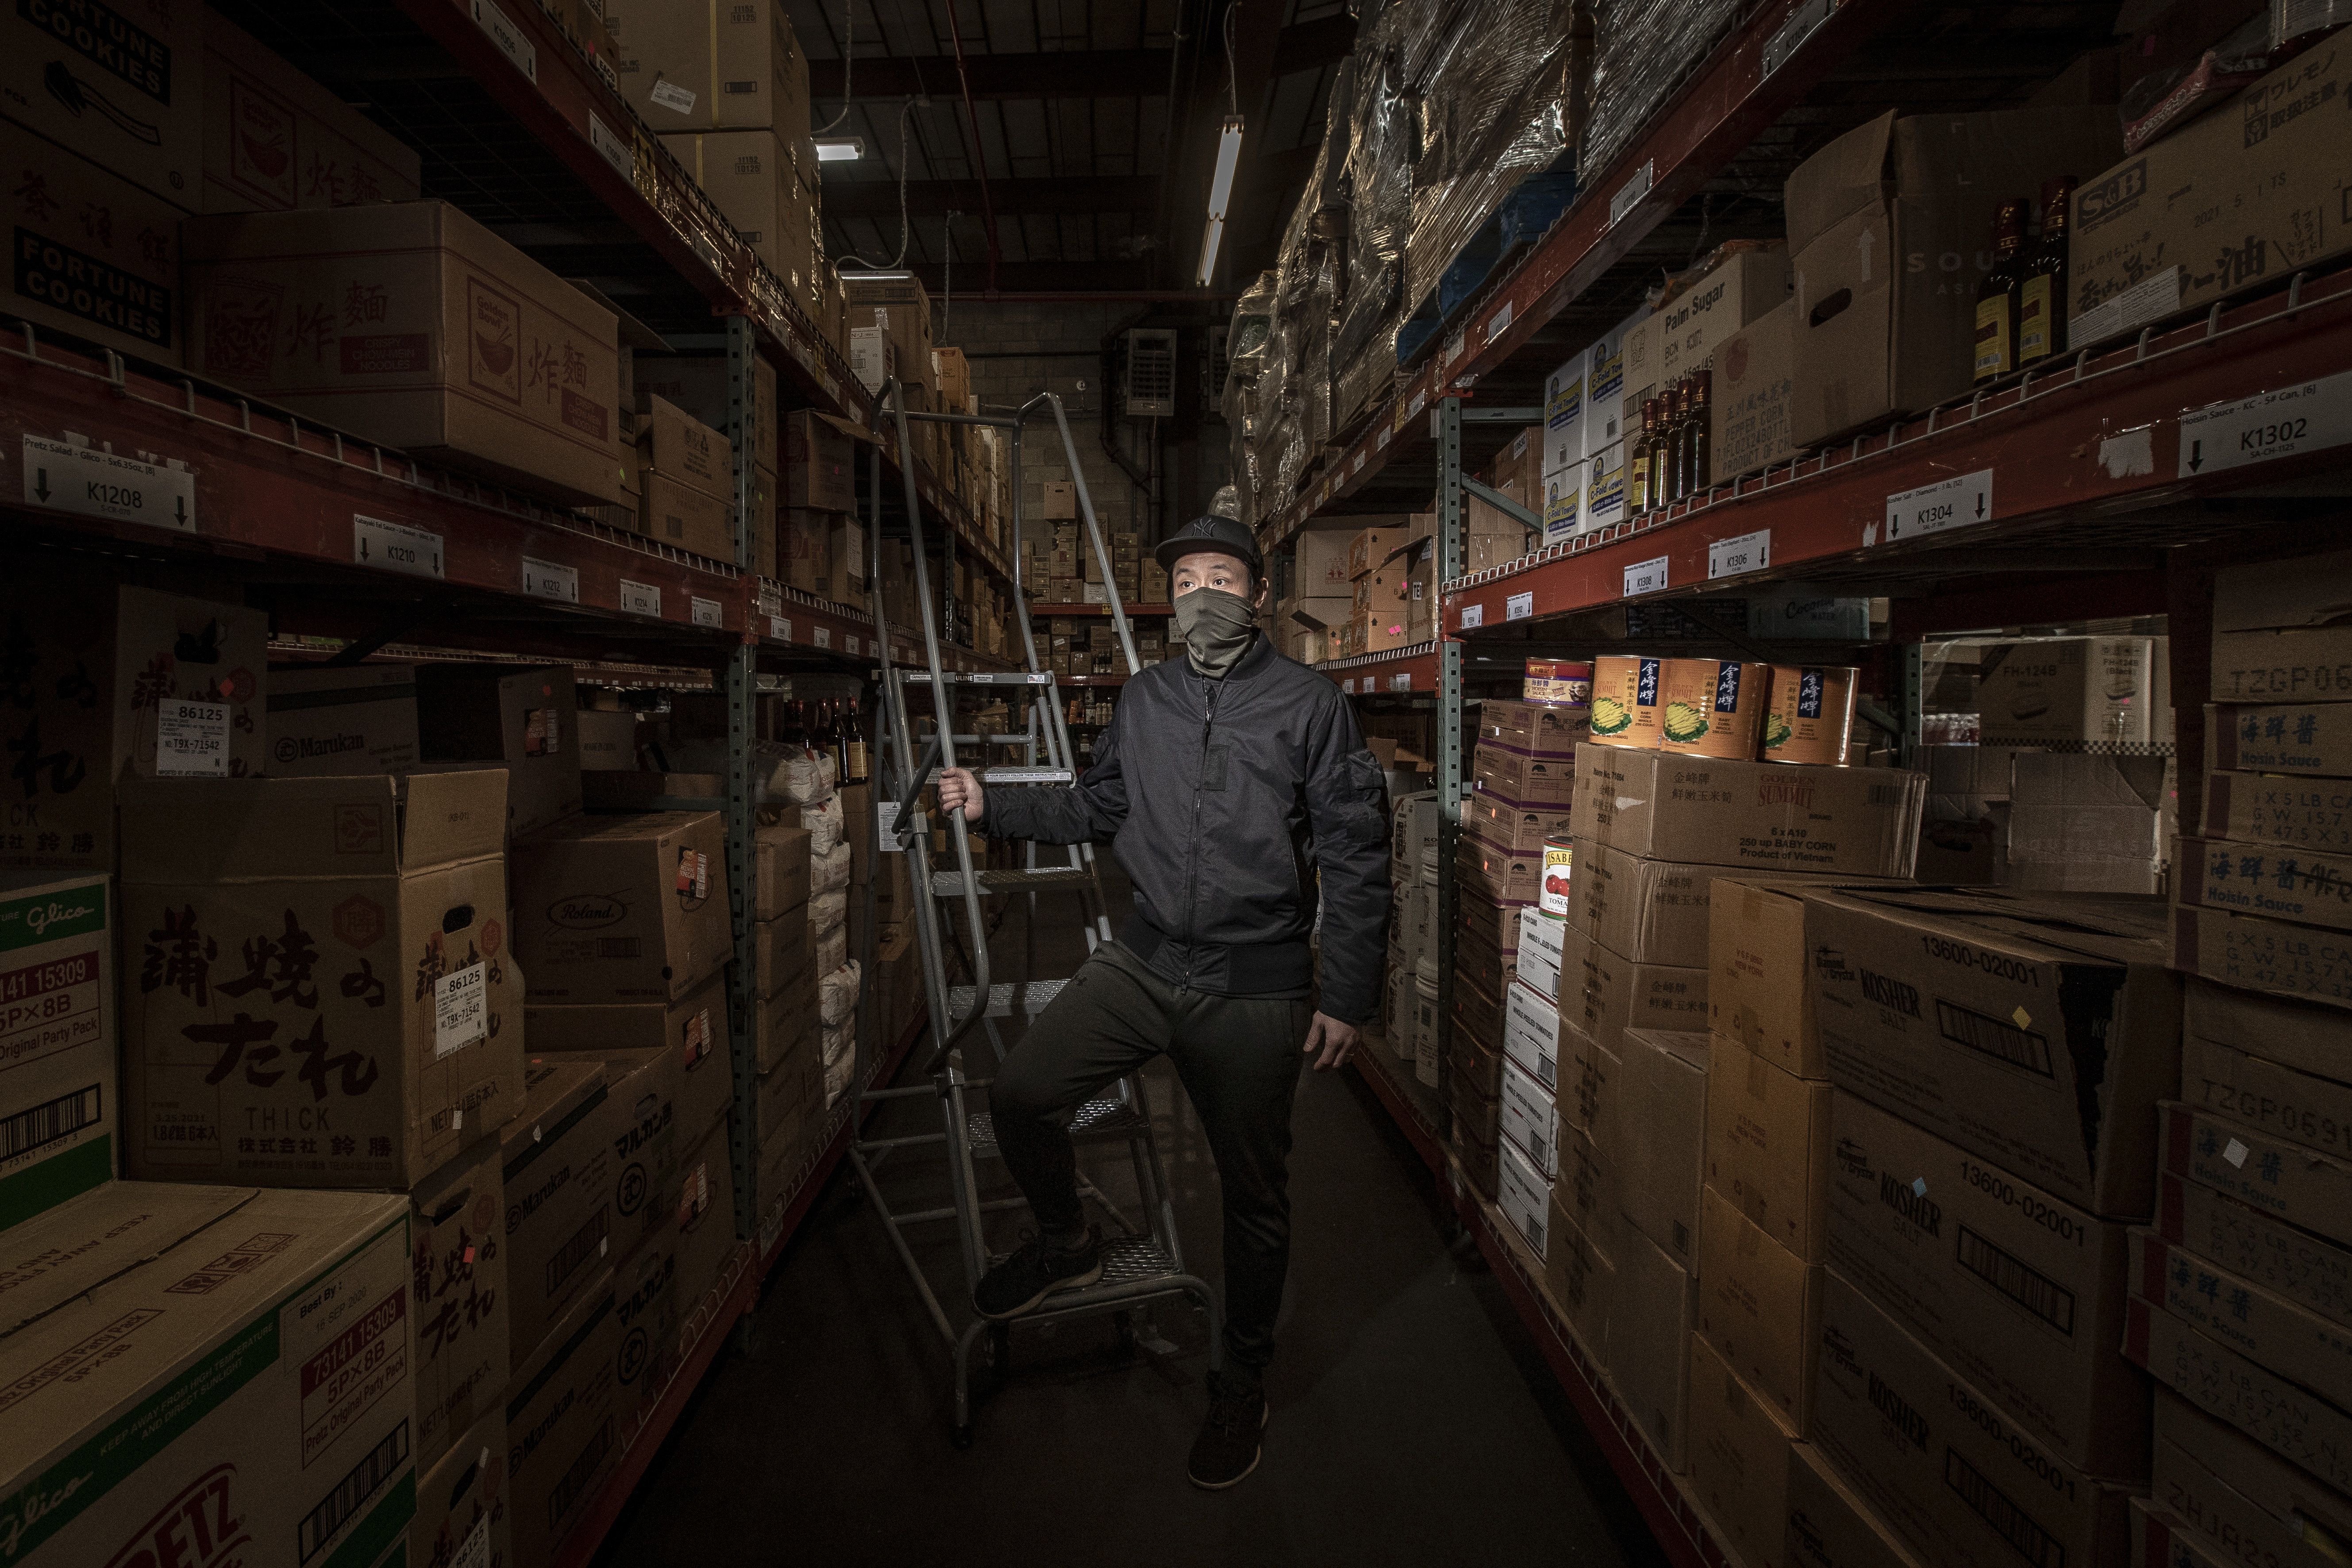 Kevin Liang, CEO of Southeast Asia Food Group, in his warehouse